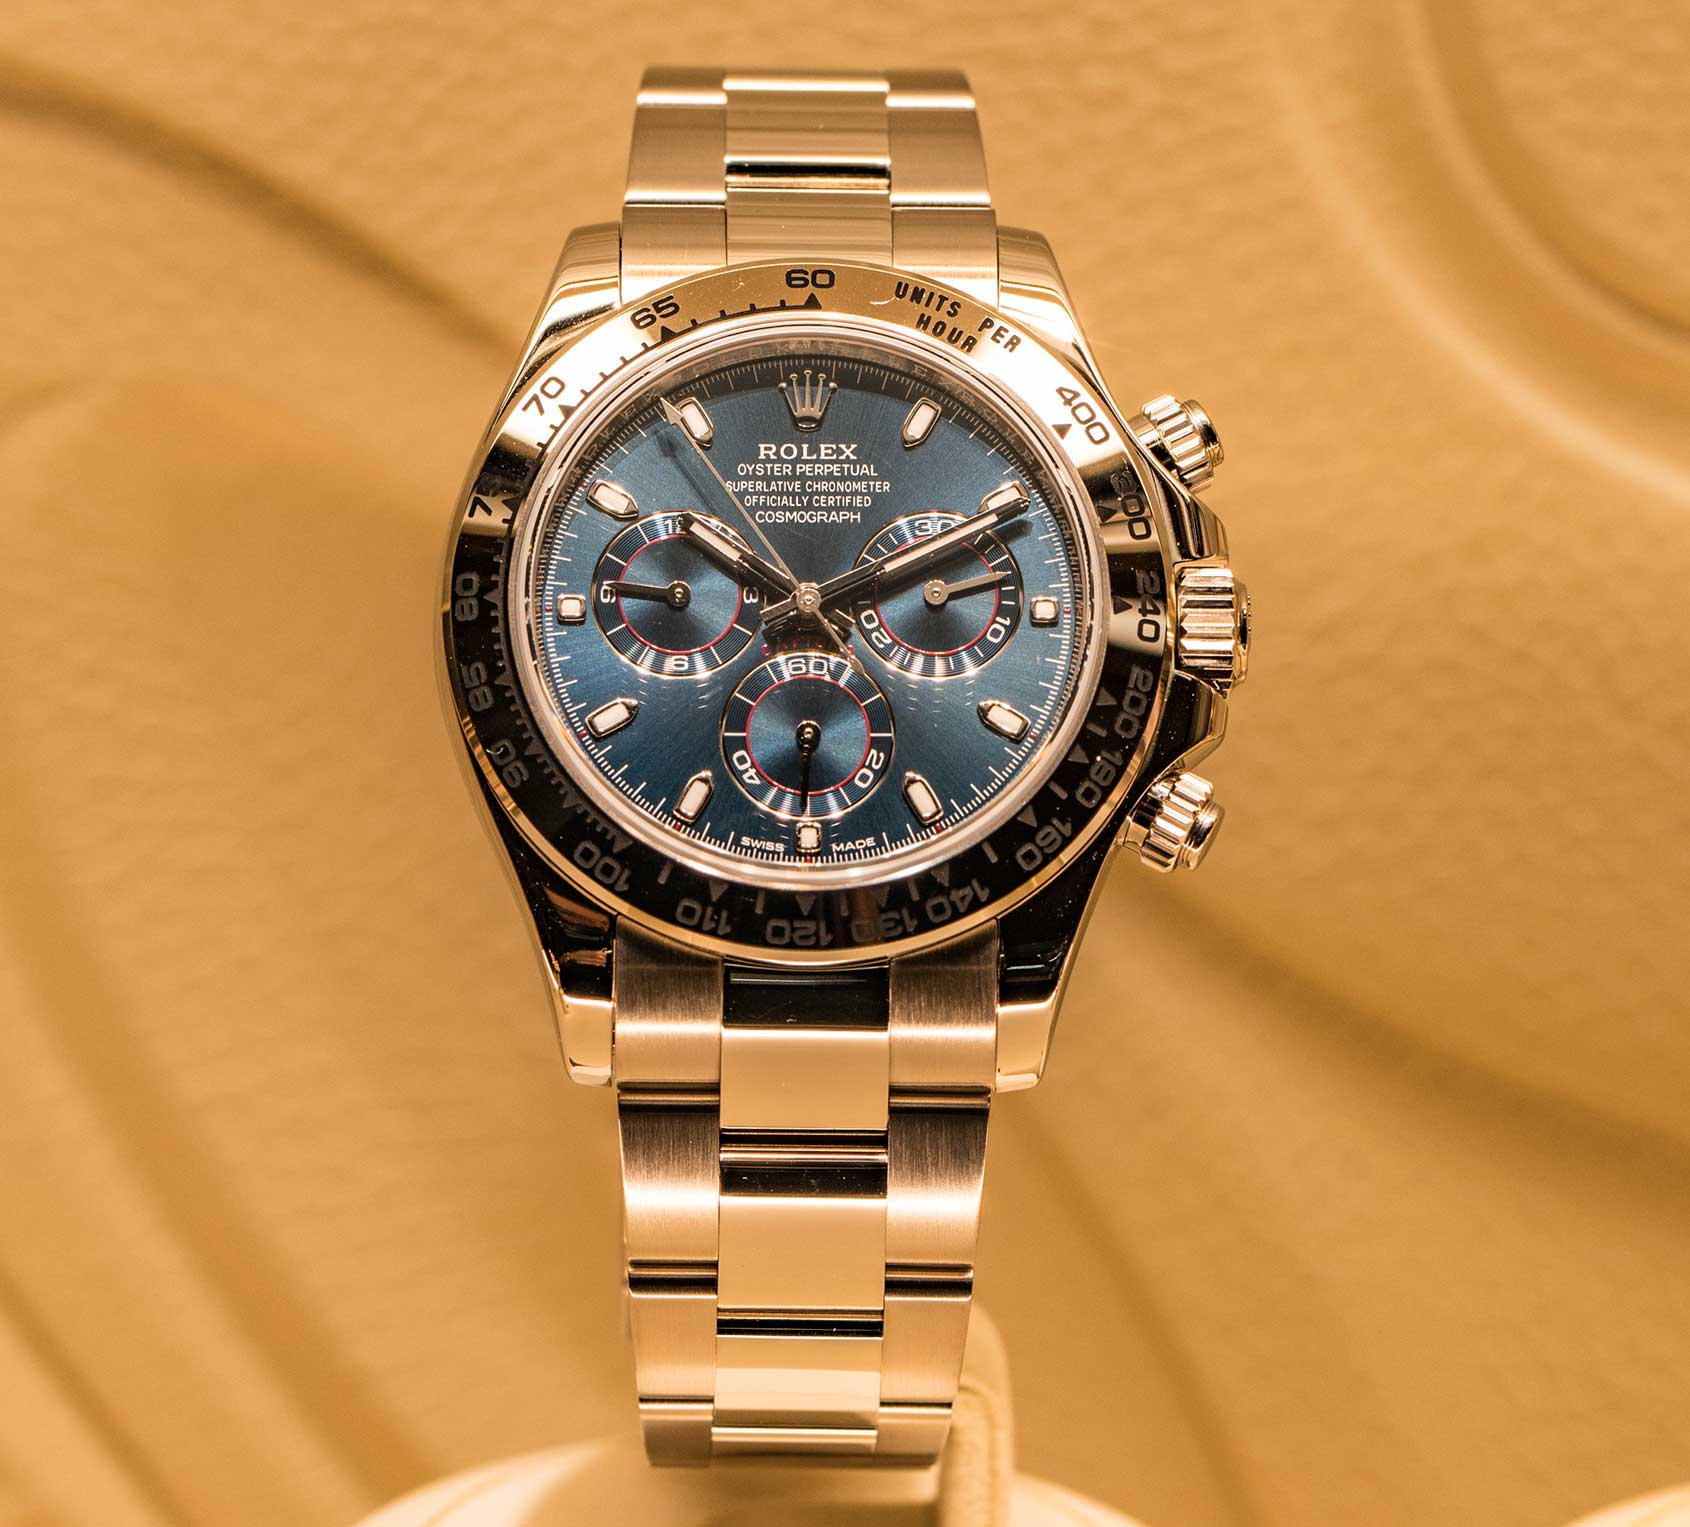 Rolex Daytona White Gold Blue Dial One More Soul